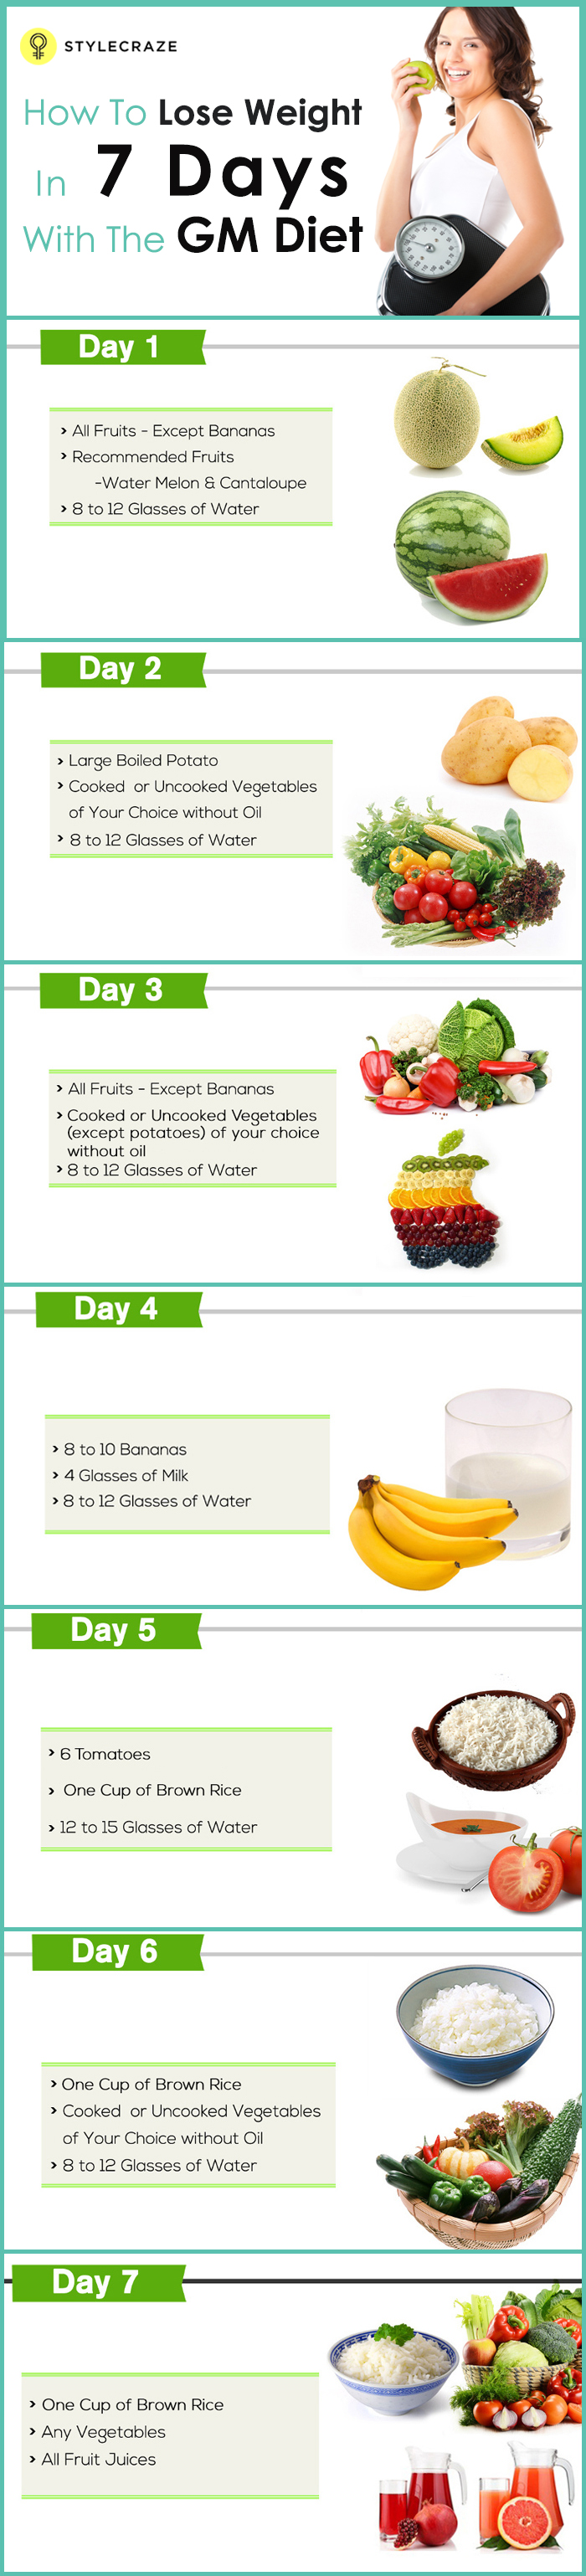 The-GM-Diet-Plan-How-To-Lose-Weight-In-Just-7-Days-1.jpg